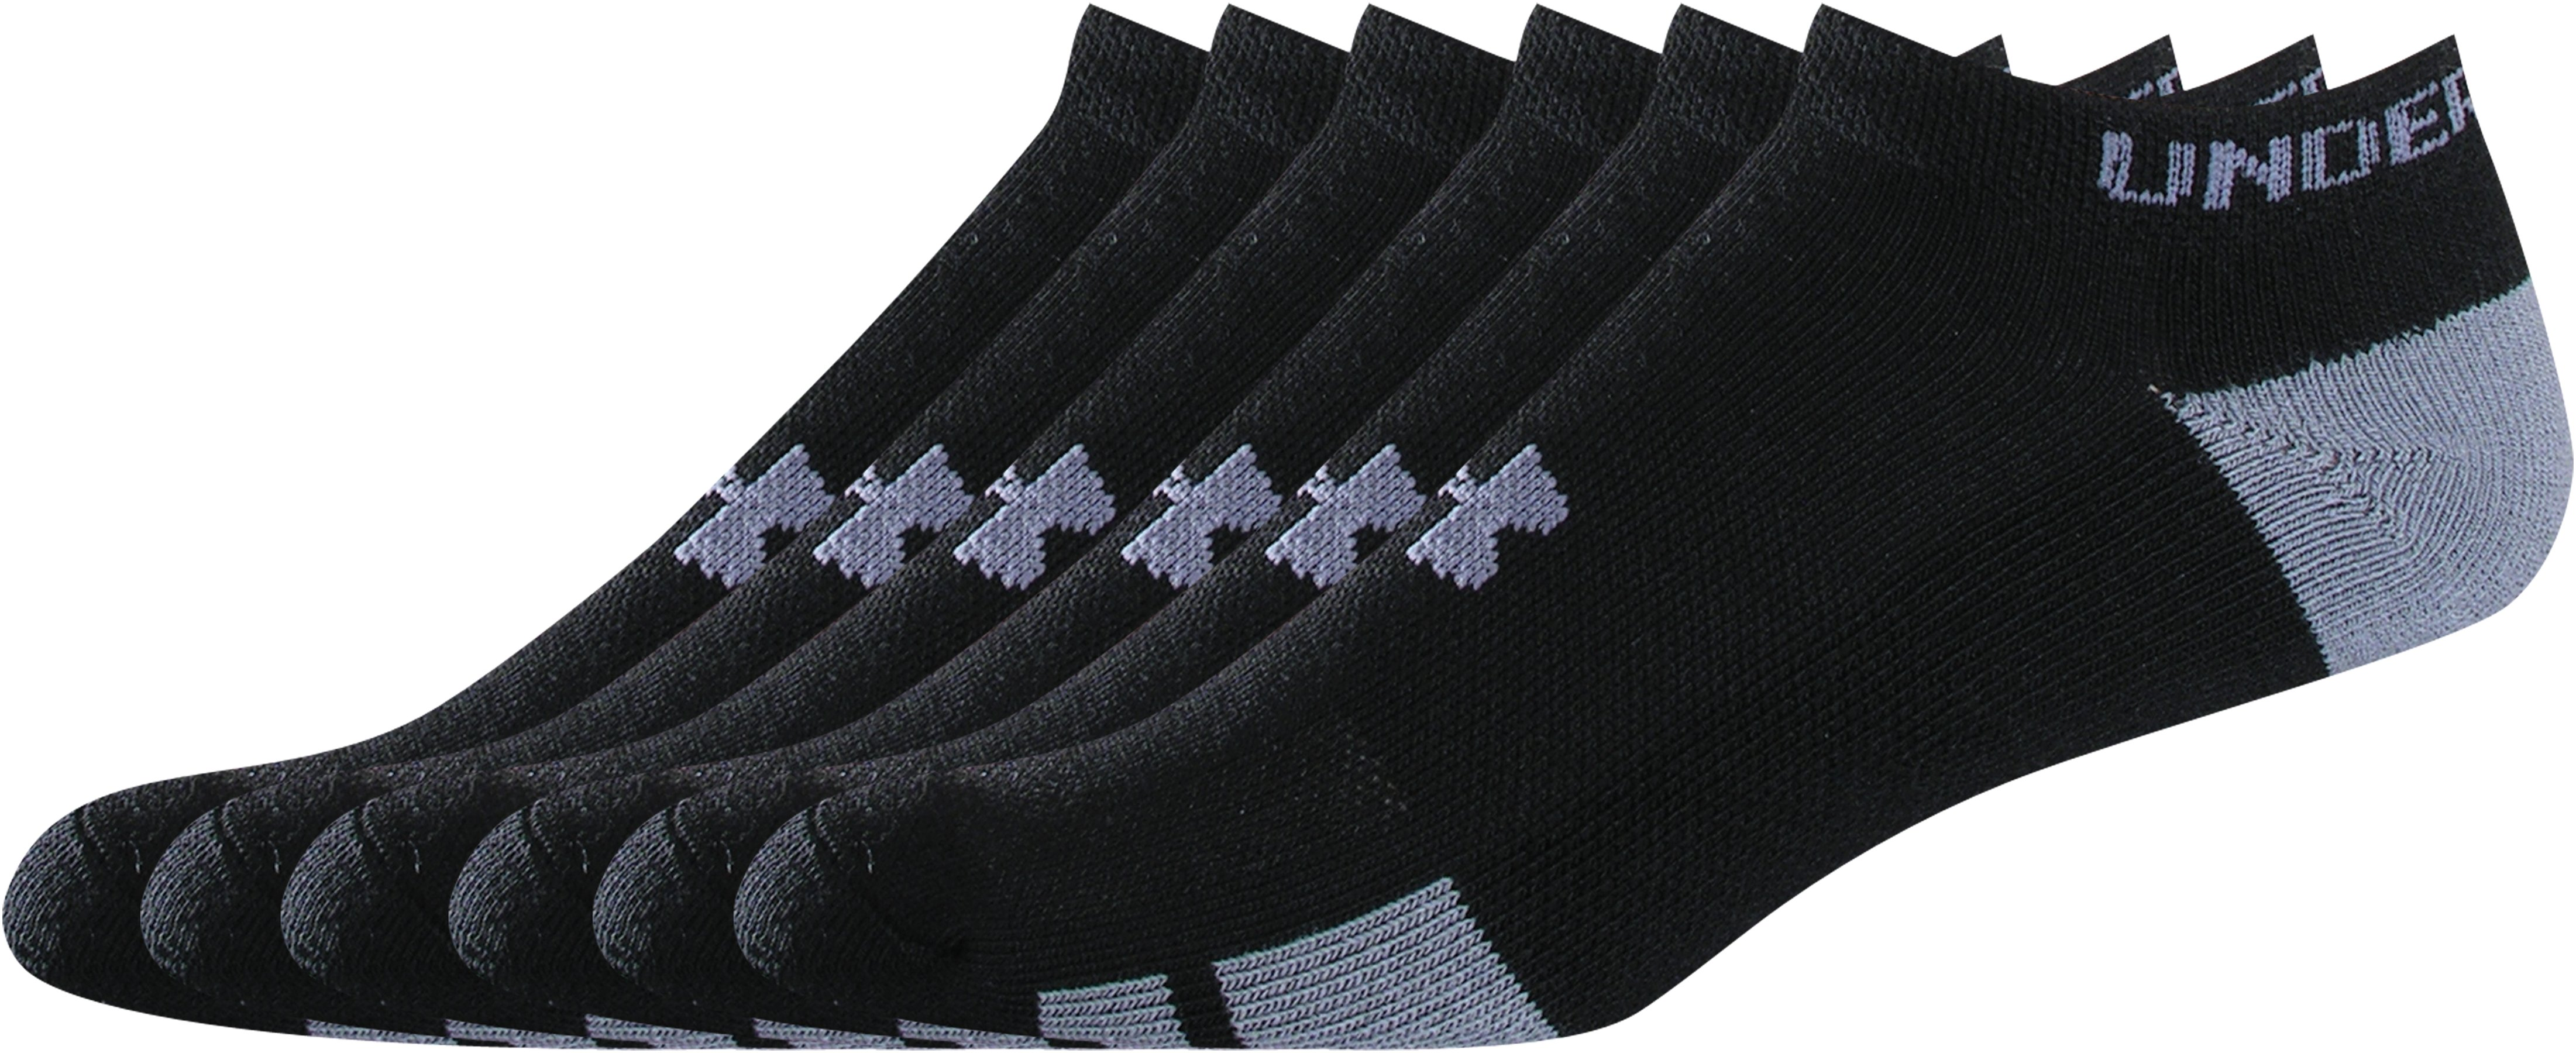 Kids' UA Resistor No Show Socks 6-Pack, Black , zoomed image